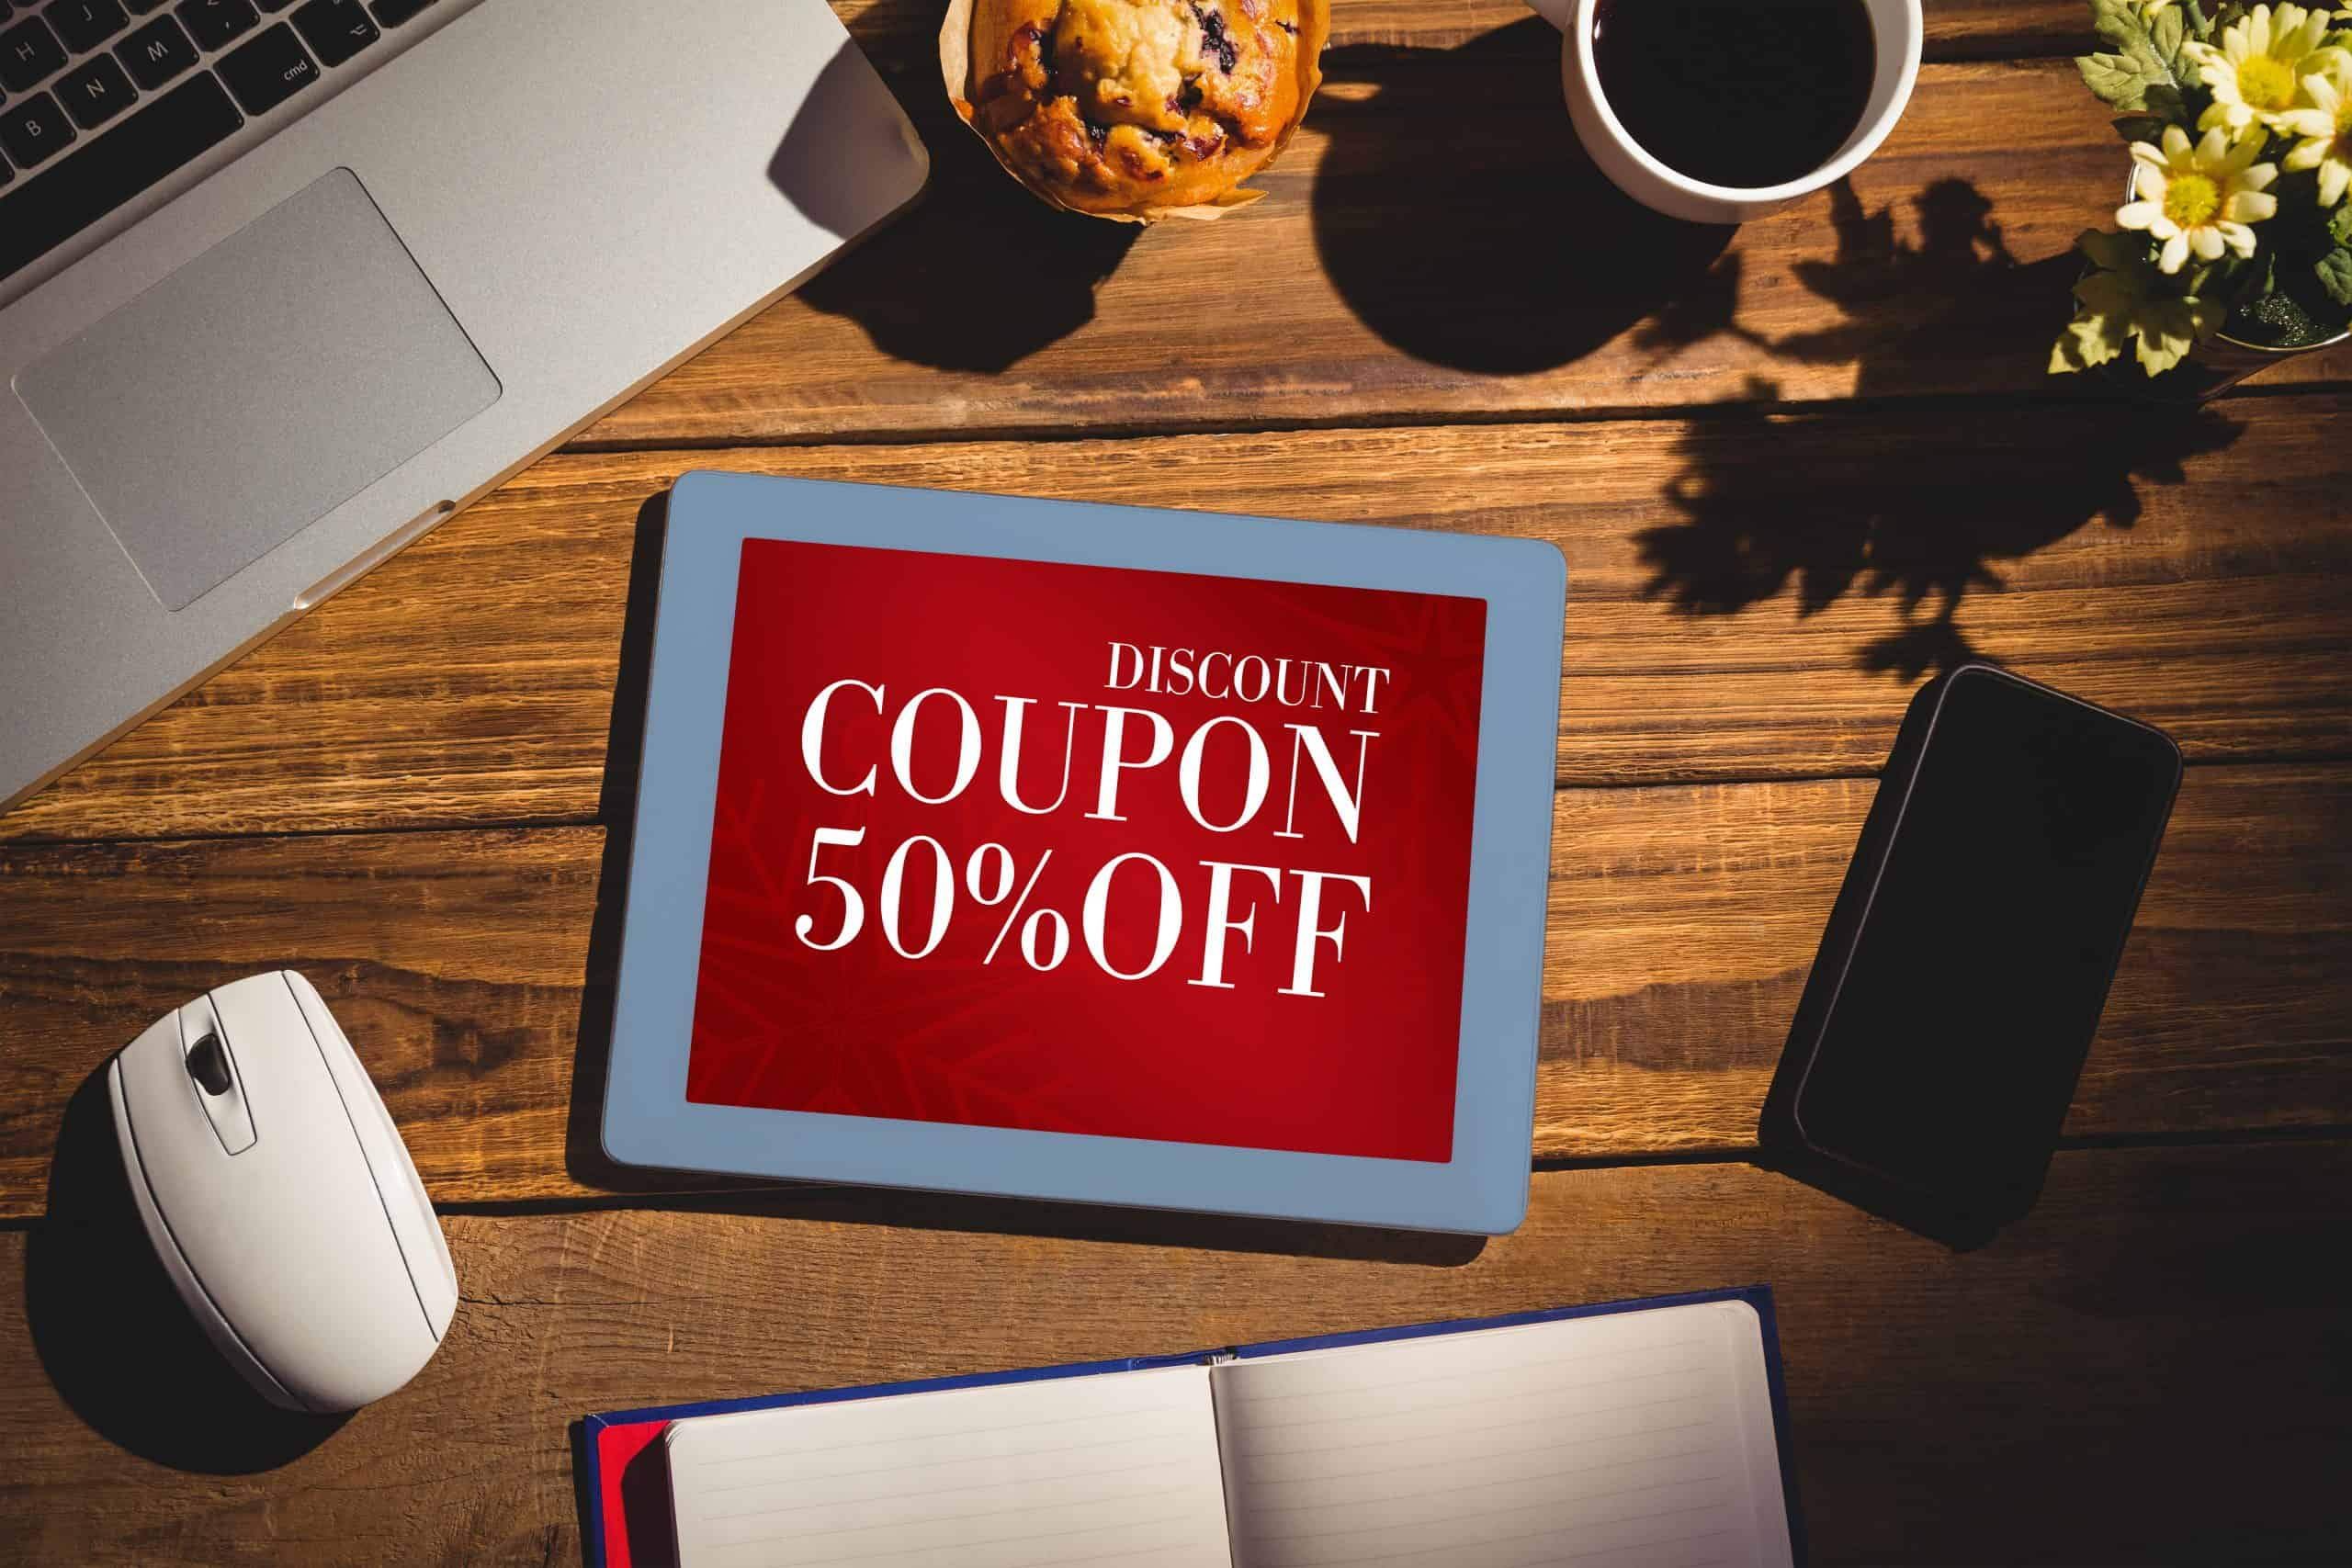 SMS Coupons Are Changing The Way Consumers Shop